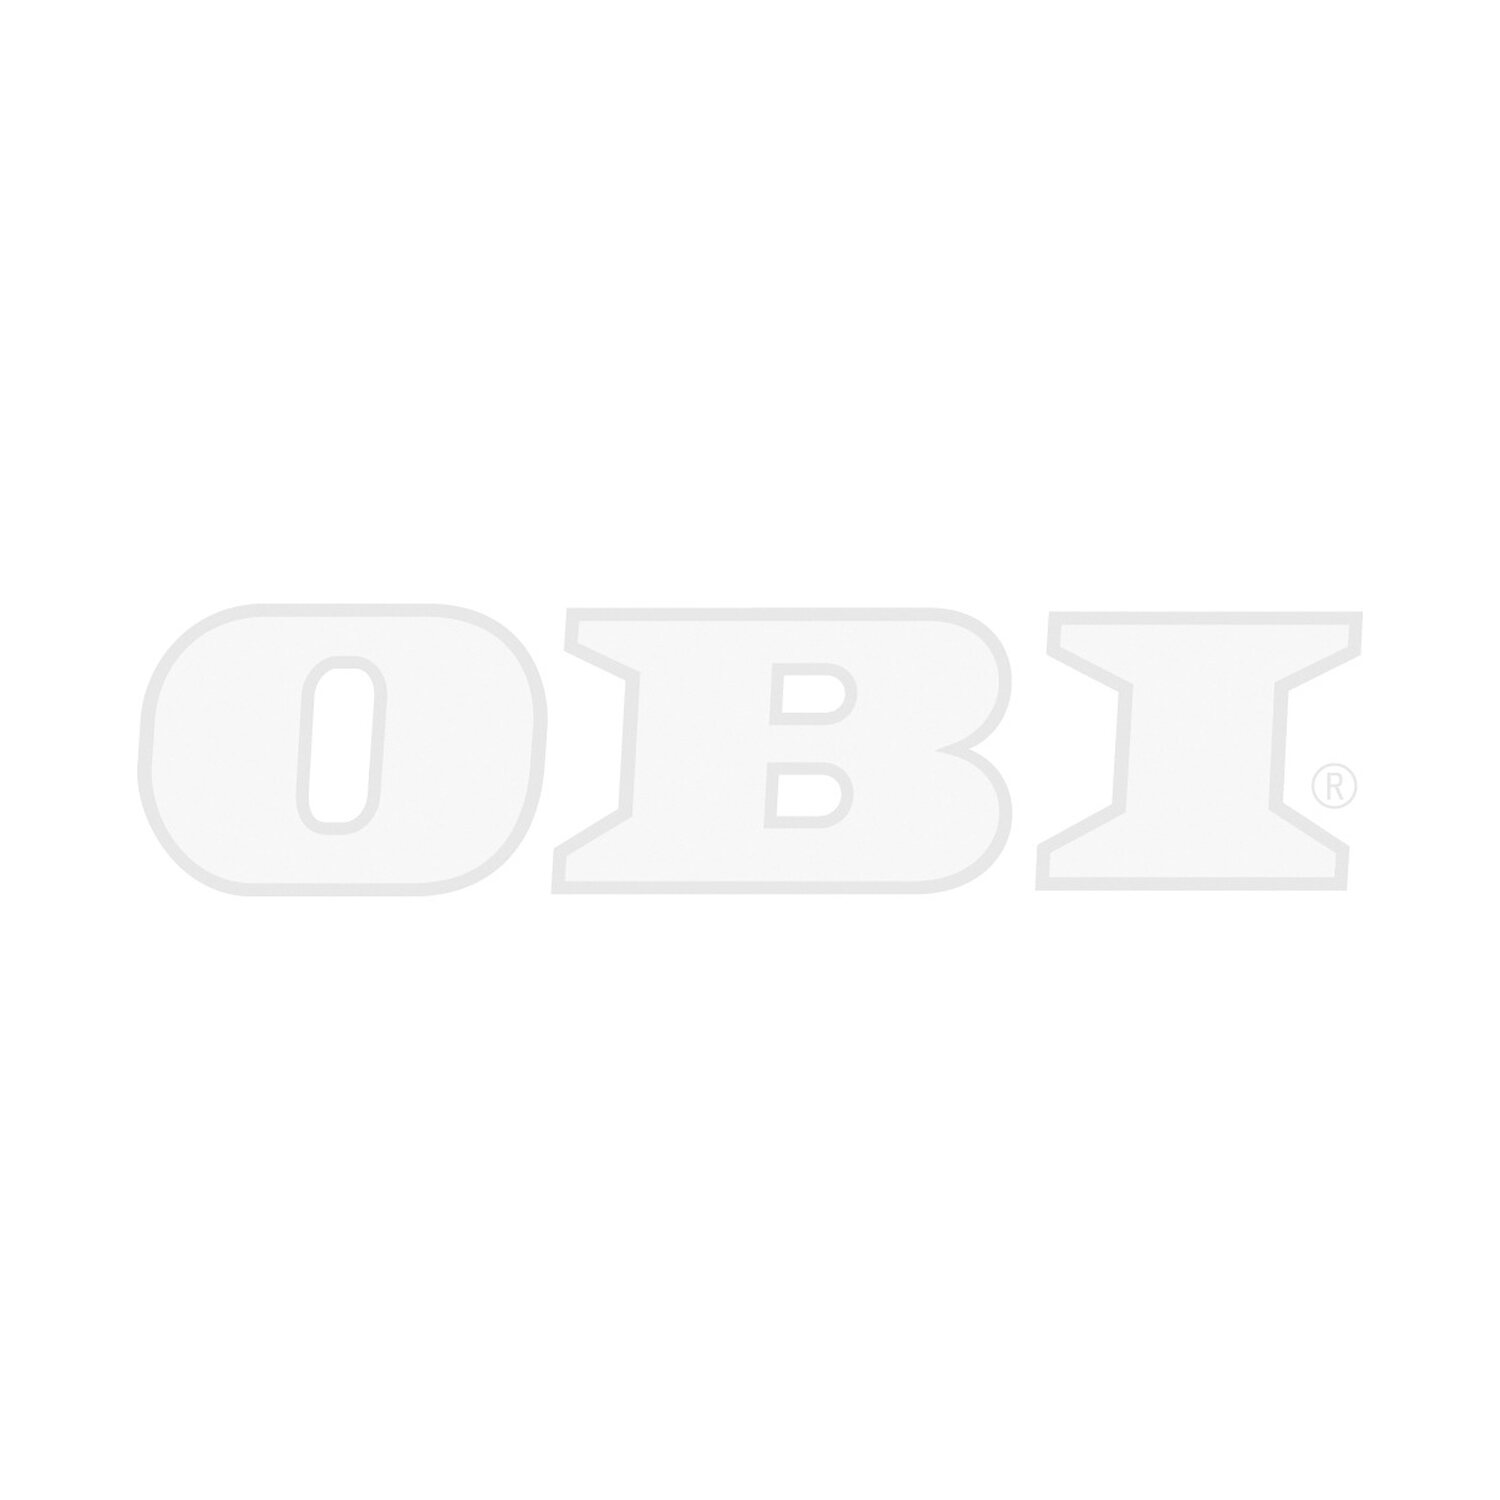 khw gartenbank berlin mit pflanzk sten anthrazit kaufen bei obi. Black Bedroom Furniture Sets. Home Design Ideas